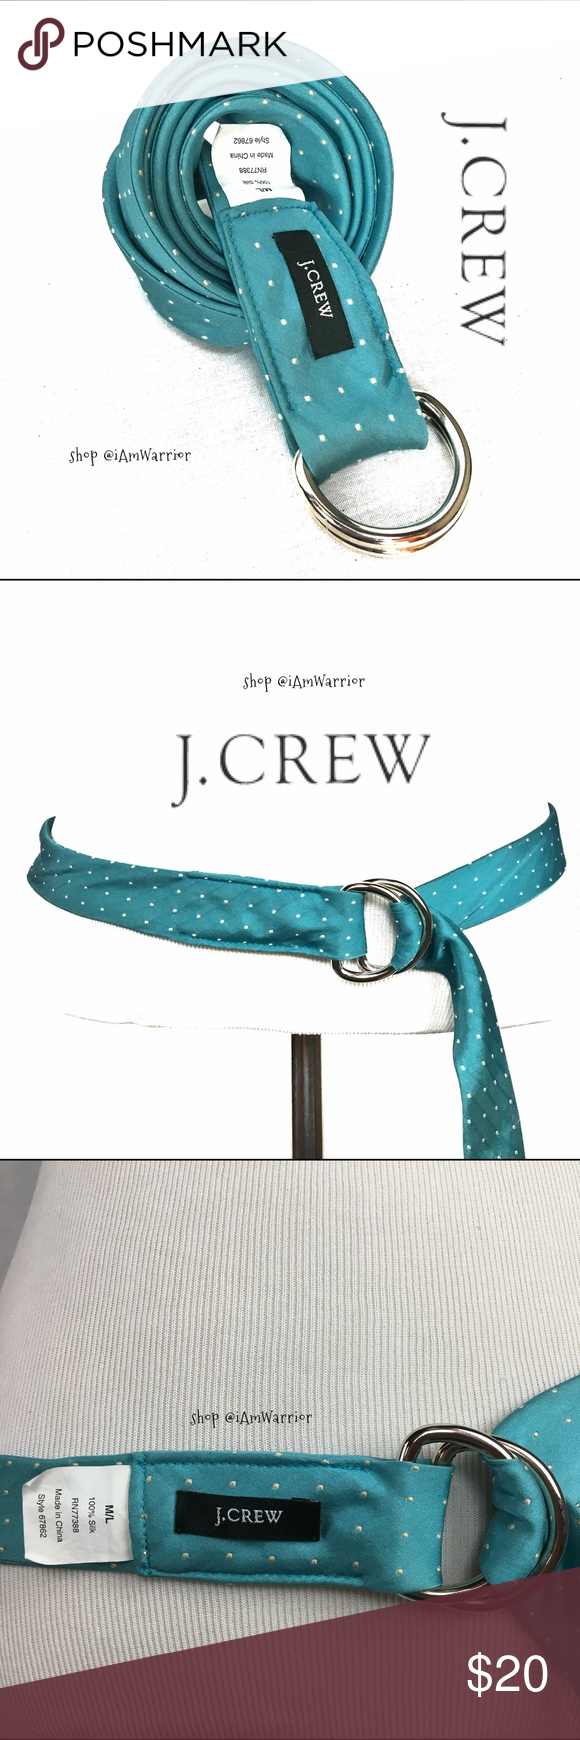 J. Crew turquoise blue silk polka dot belt Gorgeous J. Crew 100% silk fully adjustable turquoise blue belt with ivory polka dots. Size m/l. Great condition. J. Crew Accessories Belts